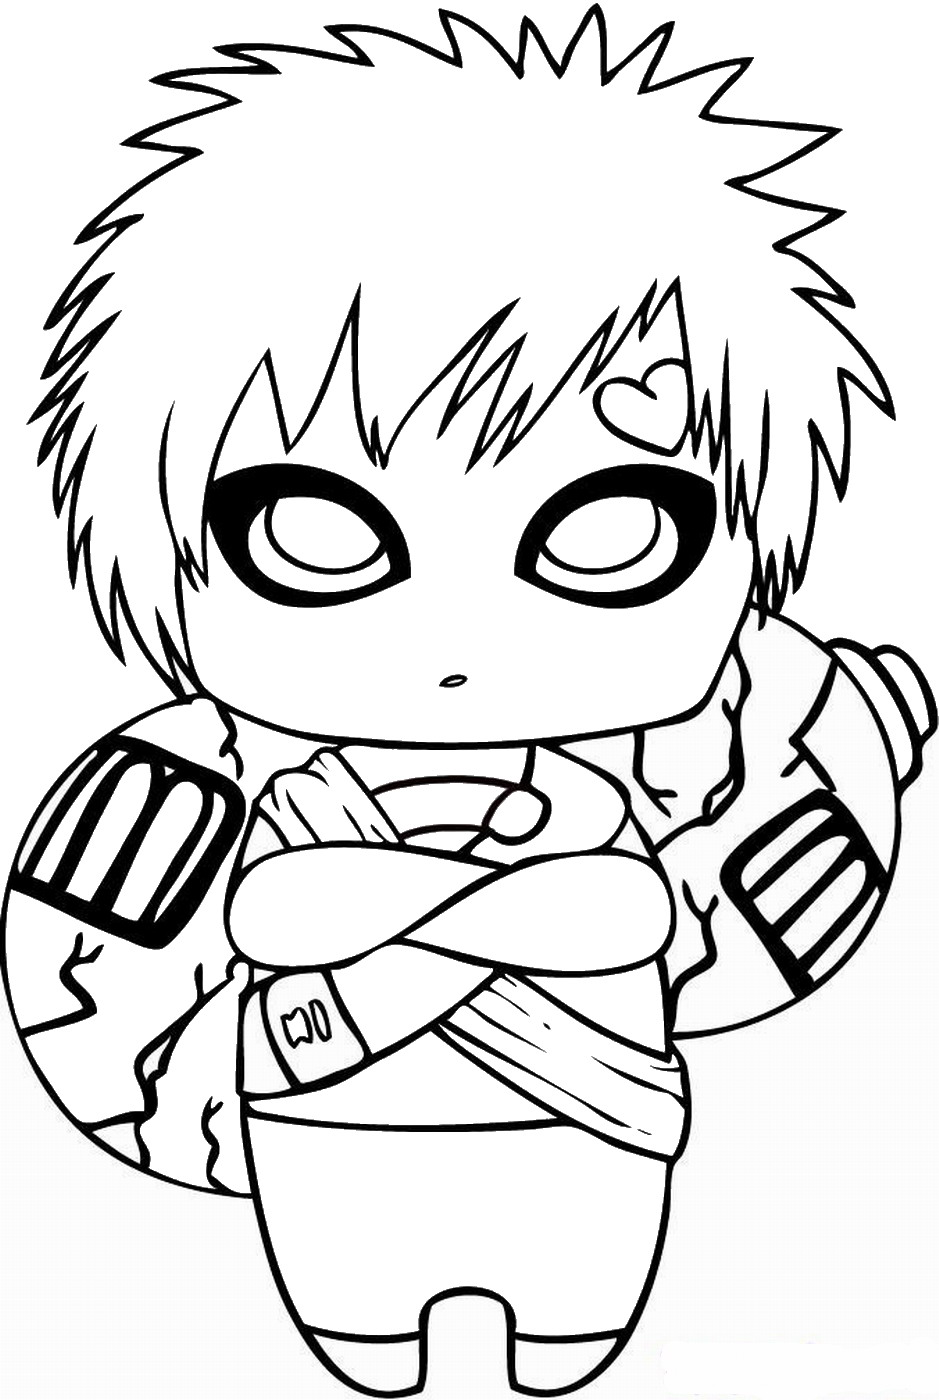 coloring pictures naruto naruto coloring pages naruto coloring pictures